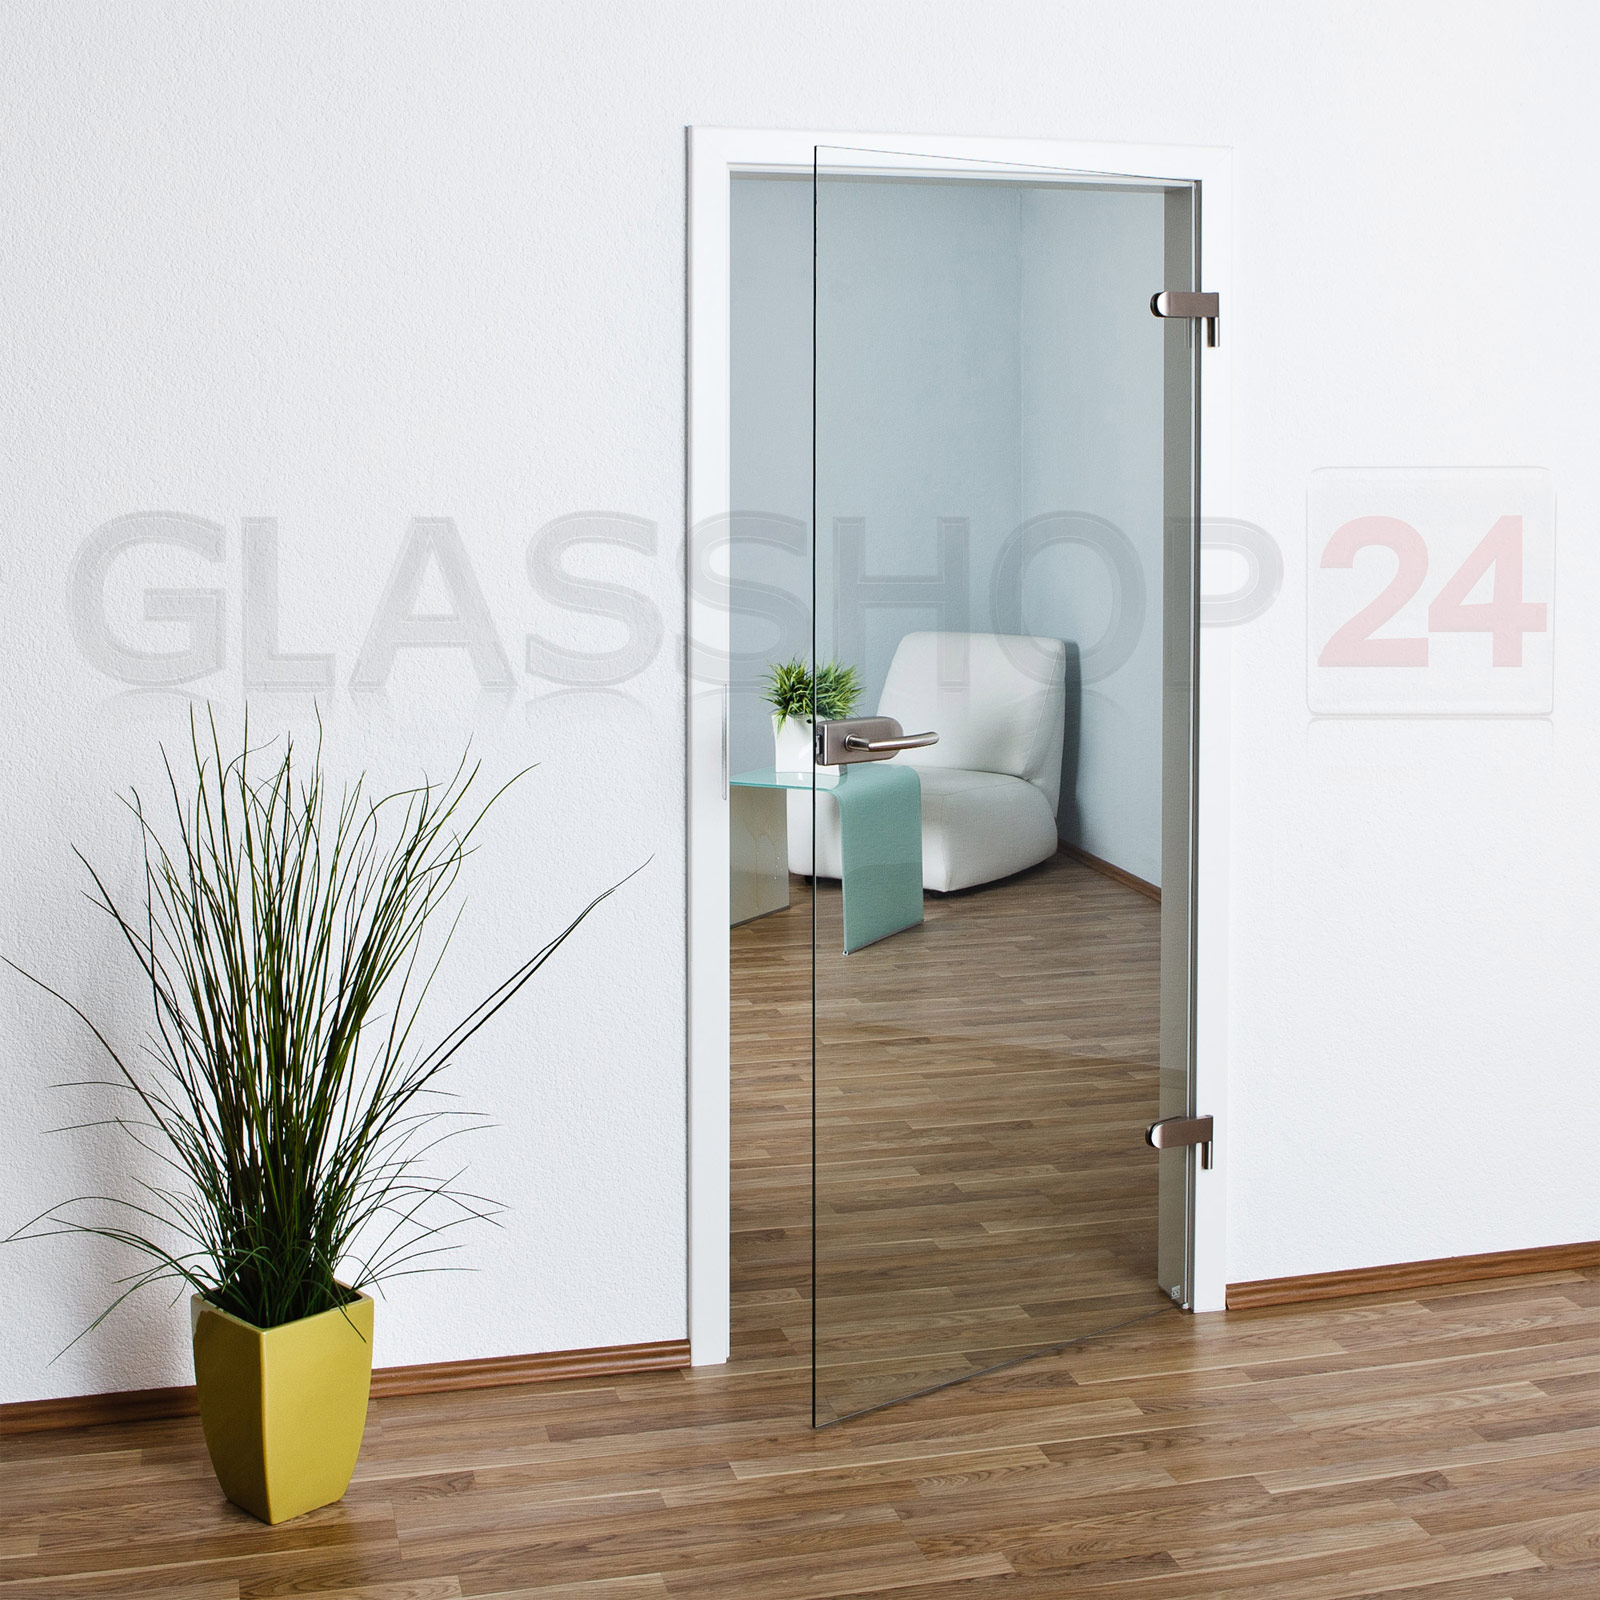 glast r 70 9 oder 83 4cm ganzglast r glast ren t r t ren zimmert r glas klar t4 ebay. Black Bedroom Furniture Sets. Home Design Ideas